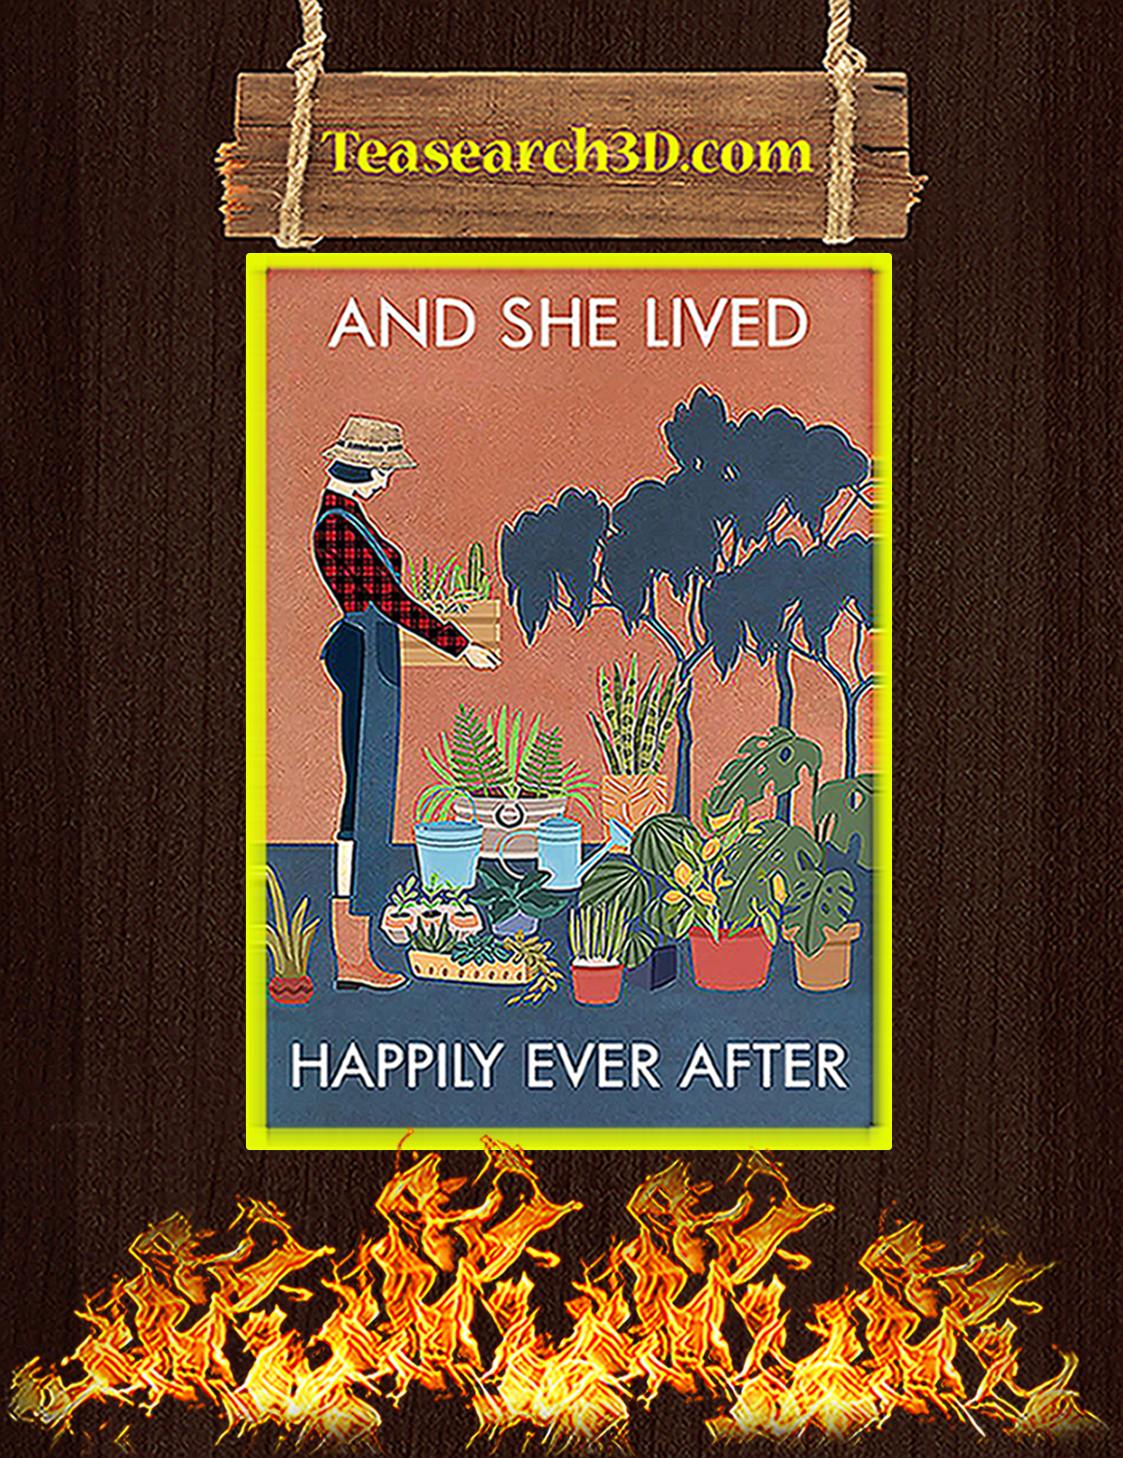 Gardening and she lived happily ever after poster A3